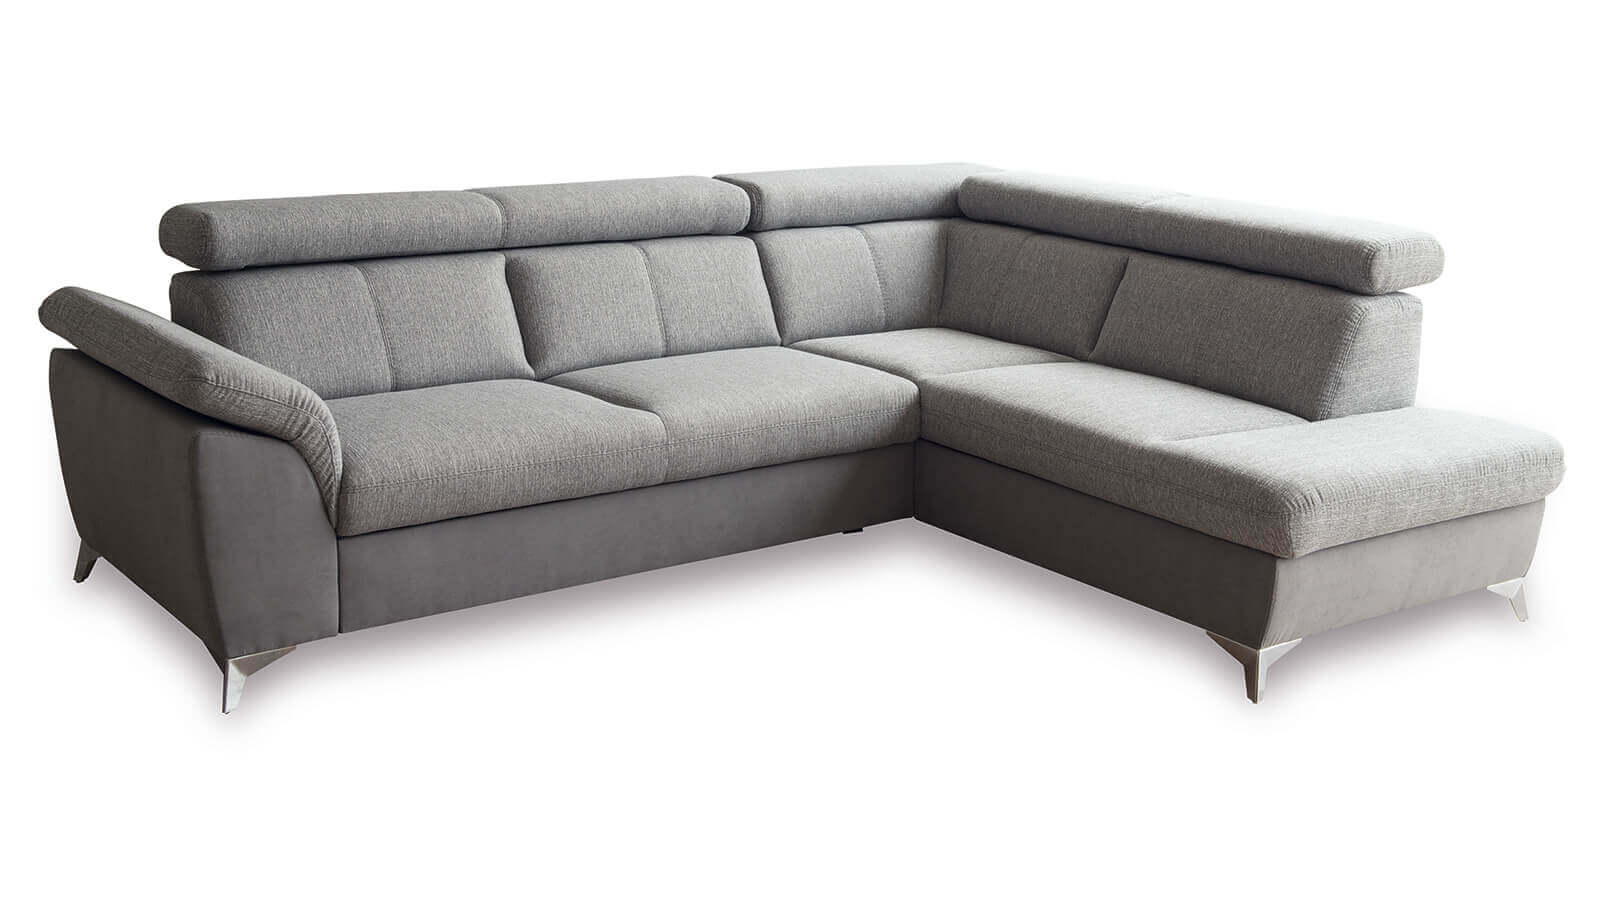 smart sofa designs single foam fold out bed sofabed ireland thesofa